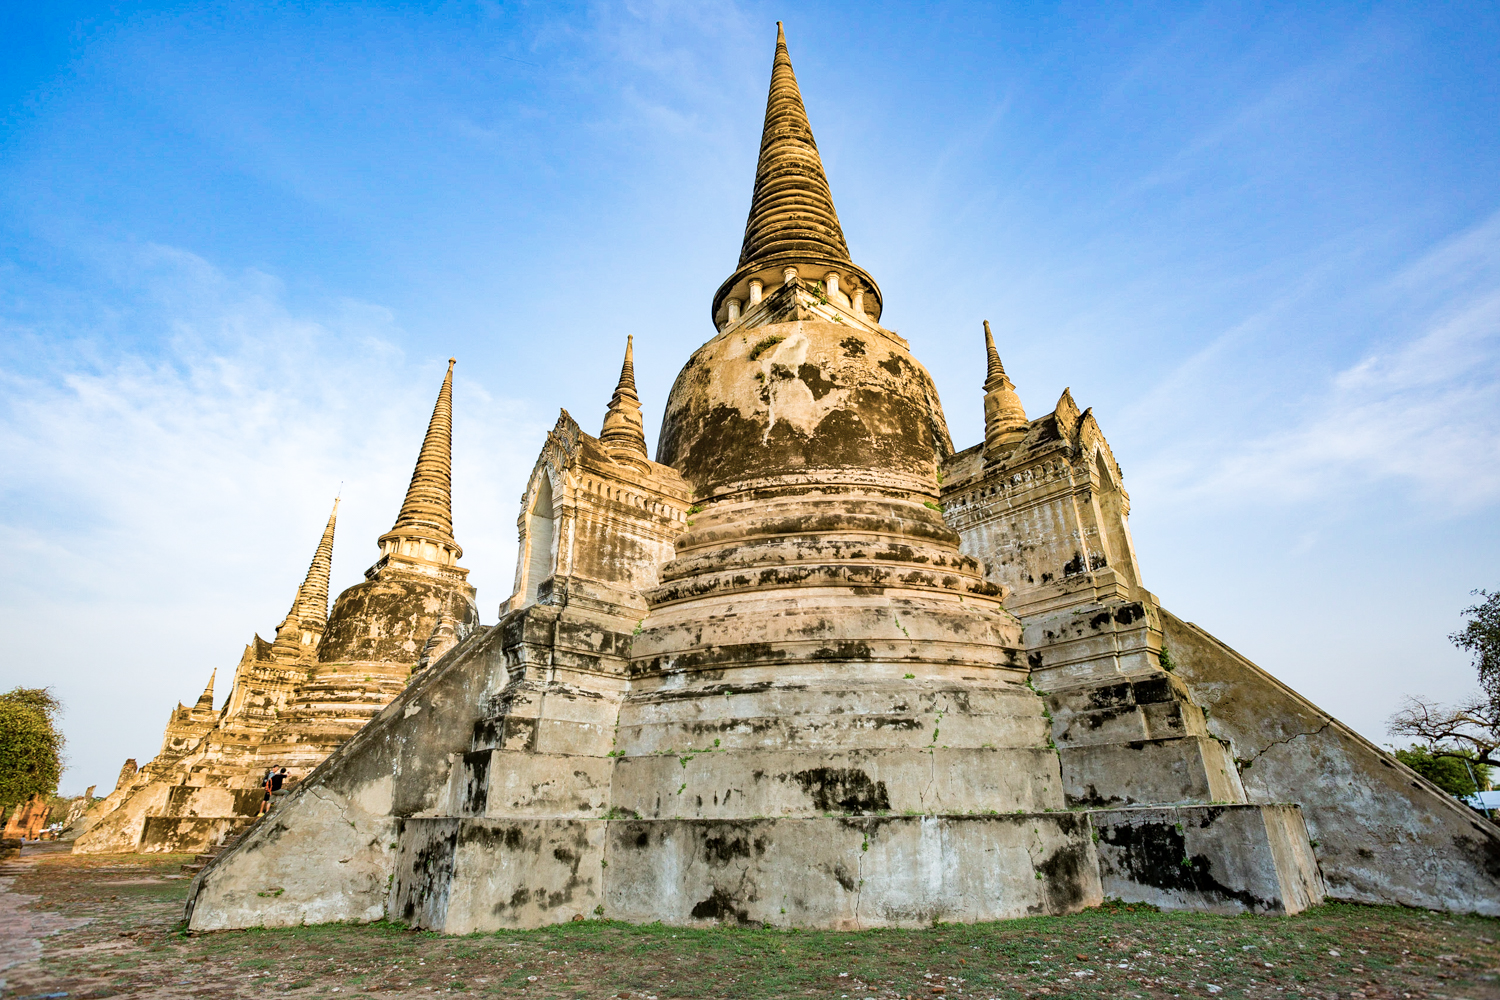 Built in the late 15th century, the Royal Palace temple, Wat Phra Si Sanphet, is the largest and most iconic temple in Ayuthaya.